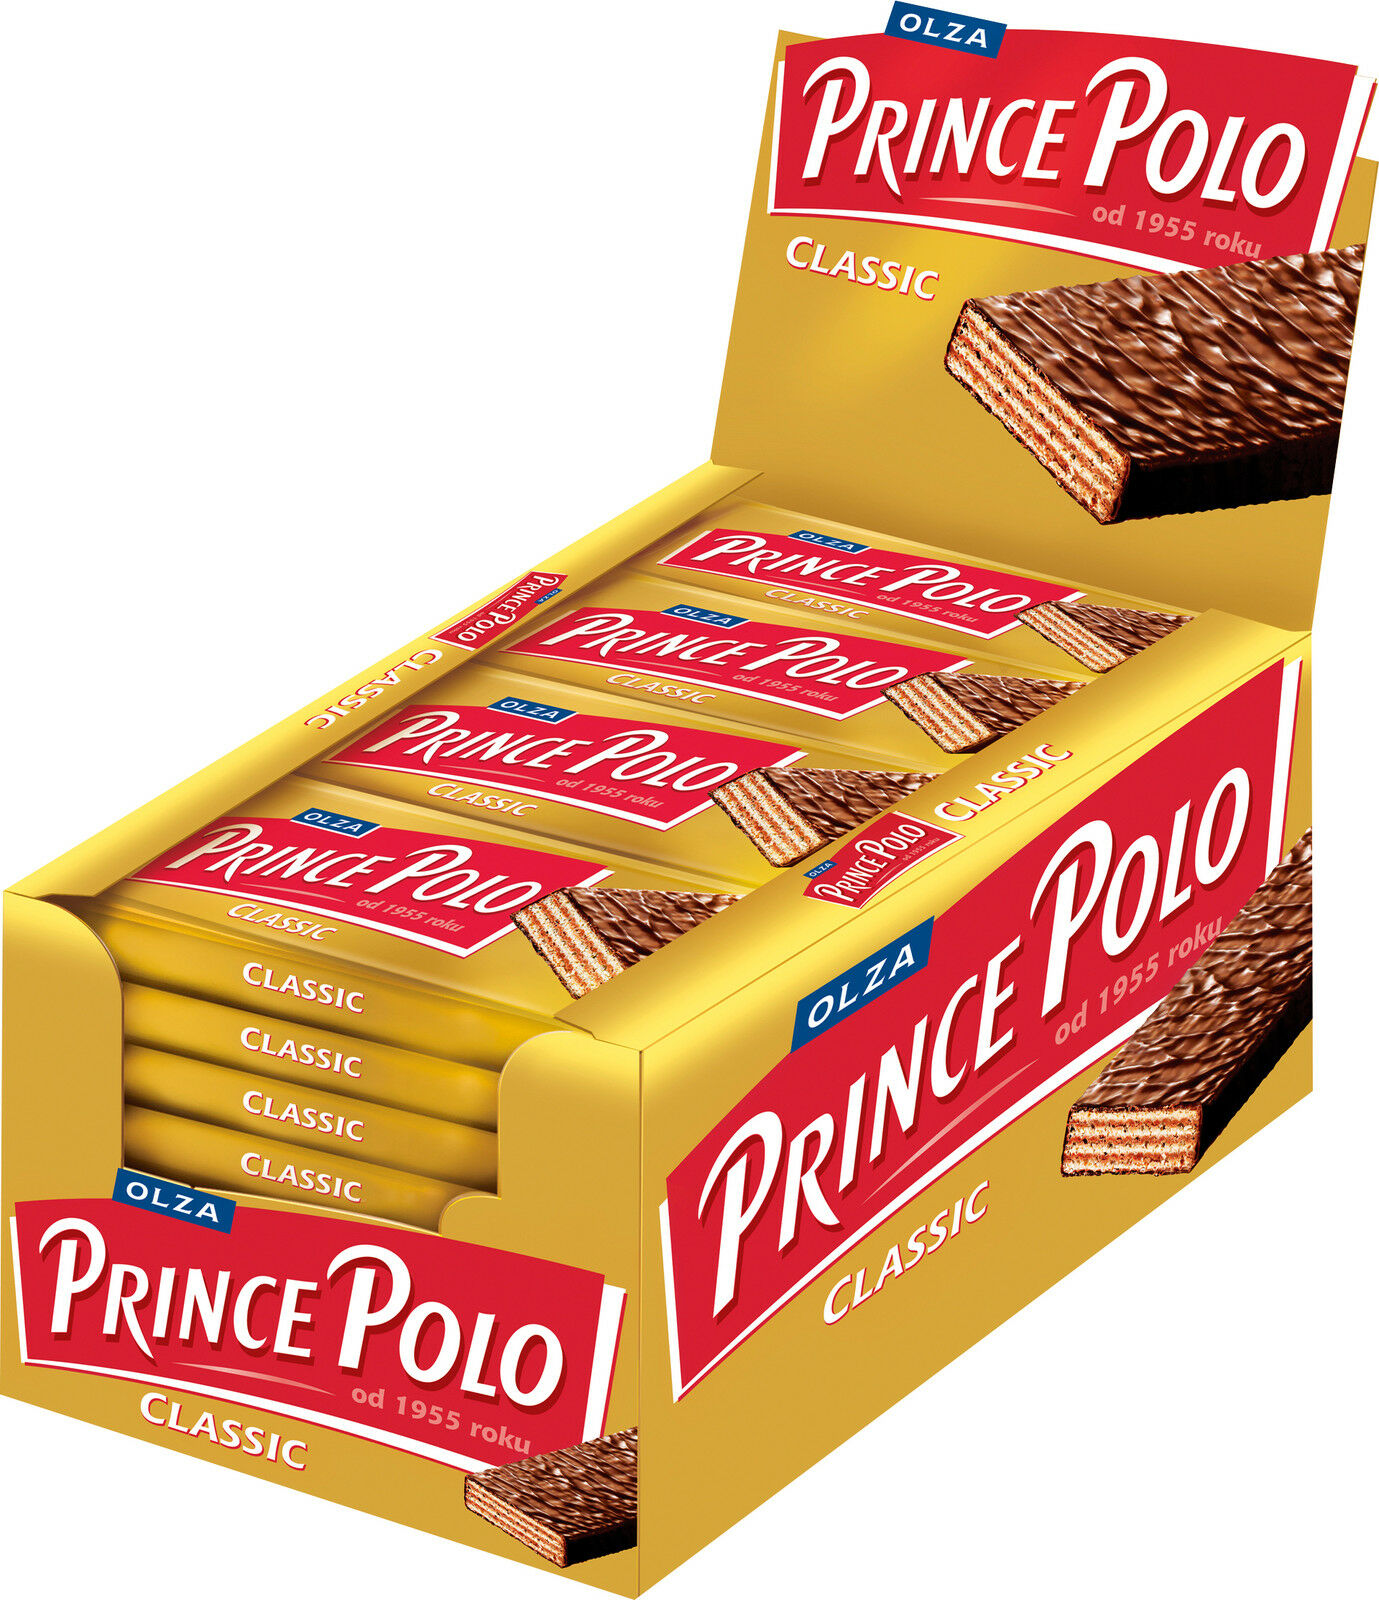 Box of 32 Bars OLZA Prince Polo Classic Chocolate Wafers 32x35g